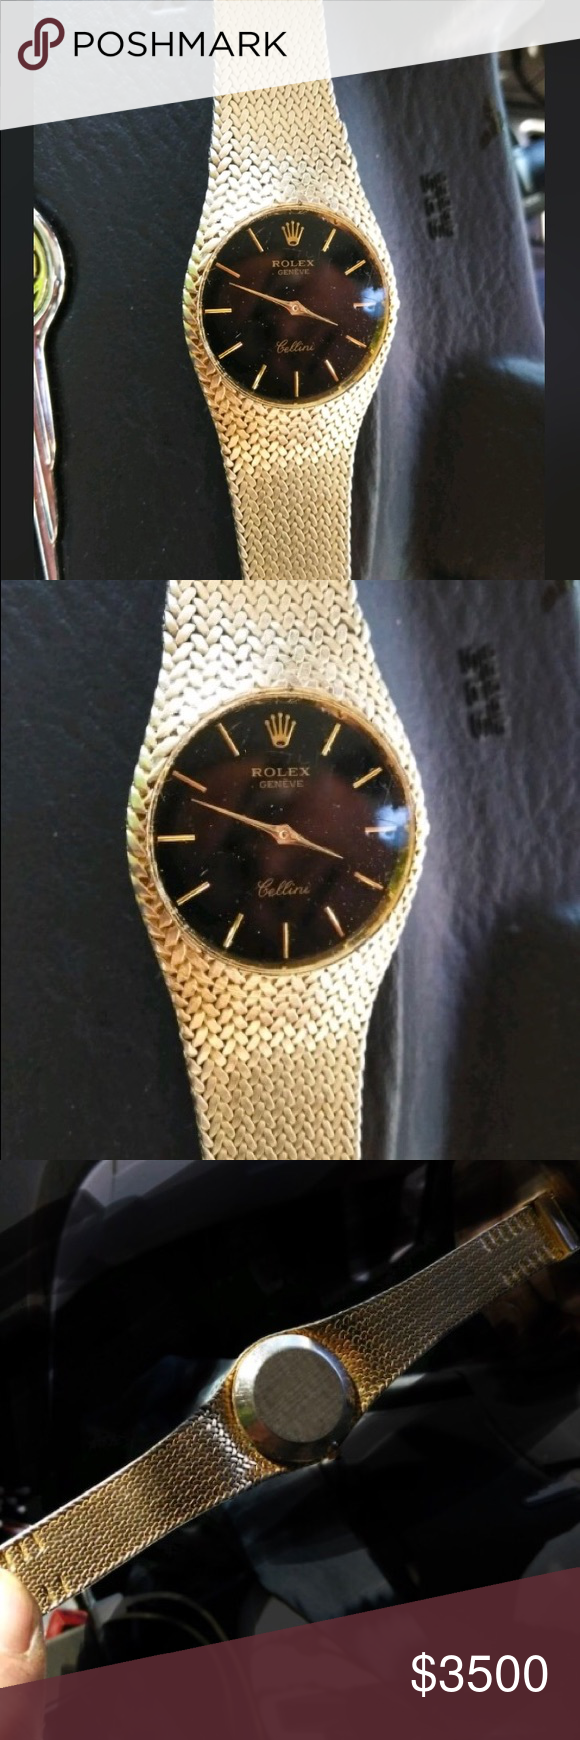 Rolex Geneve Cellini Watch Gold Vintage This Is A Vintage Rolex Geneve Cellini That Is In Amazing Condition I Don T Know Much About T Gold Watch Vintage Rolex